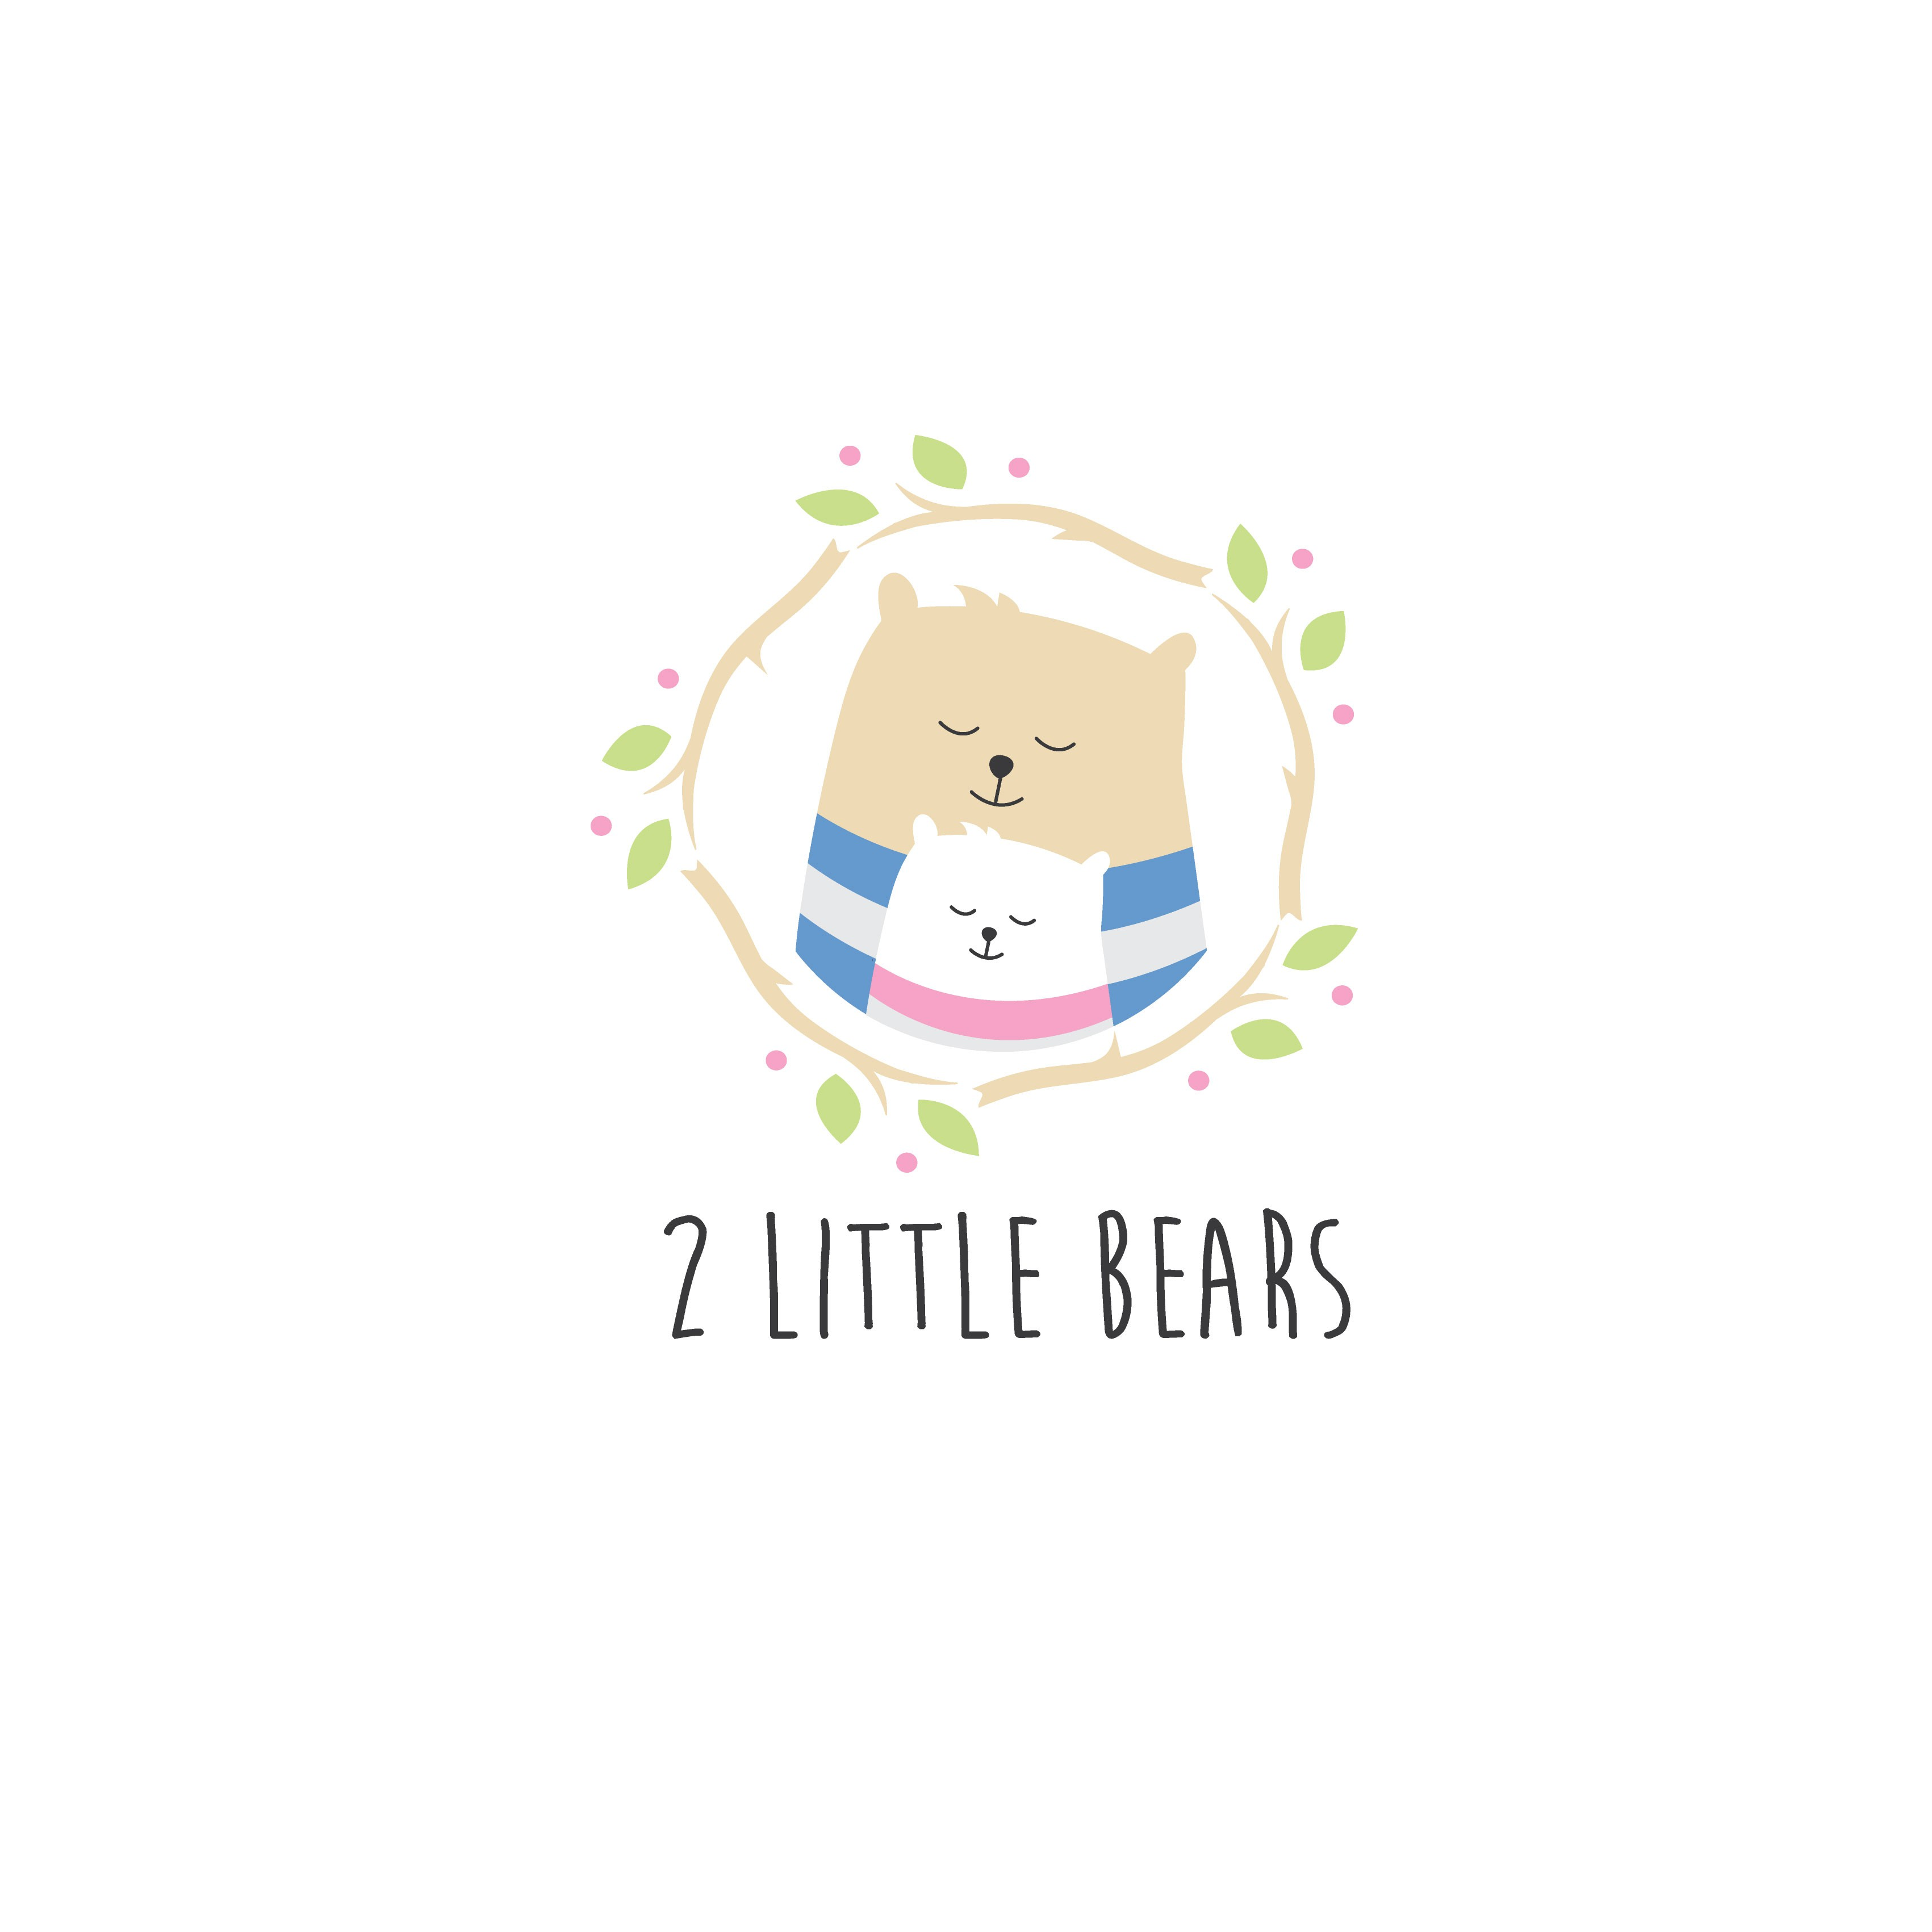 Create a Hipster meets Town & Country logo for 2 Little Bears baby gift shop